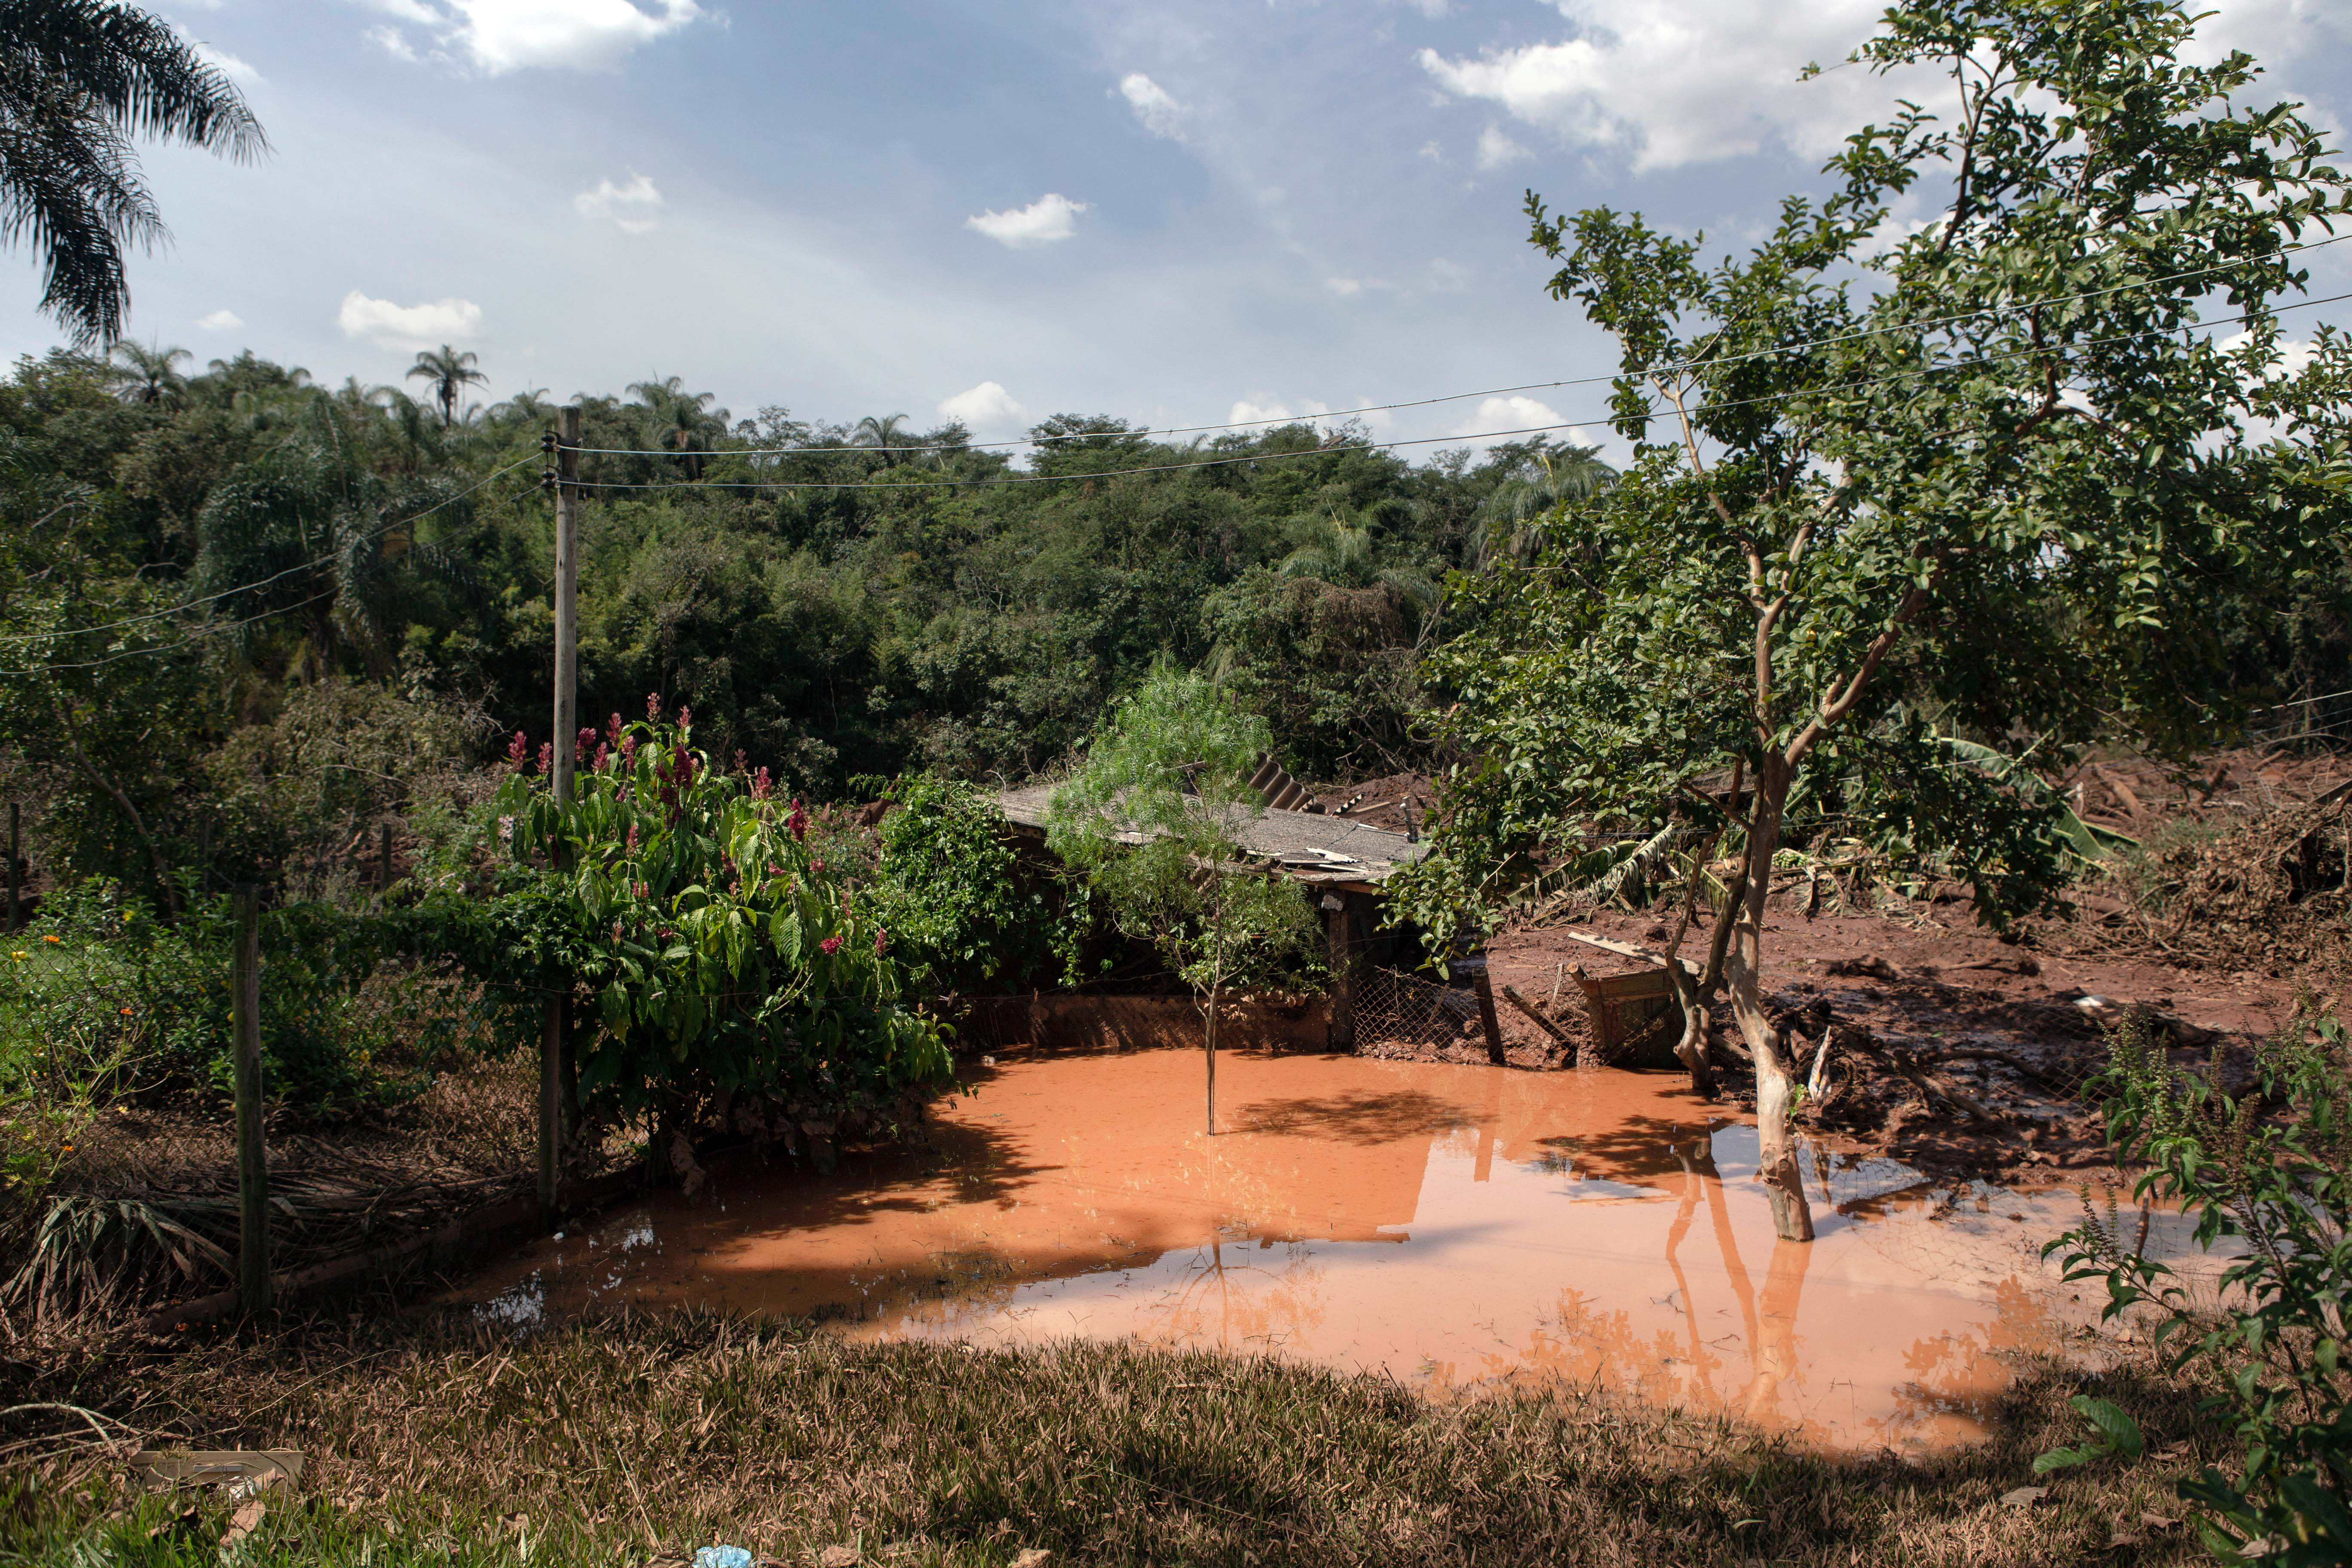 A house inundated by the collapse of the Brumadinho dam in Brazil about a week after the January disaster. MUST CREDIT: Photo by Pétala Lopes for The Washington Post